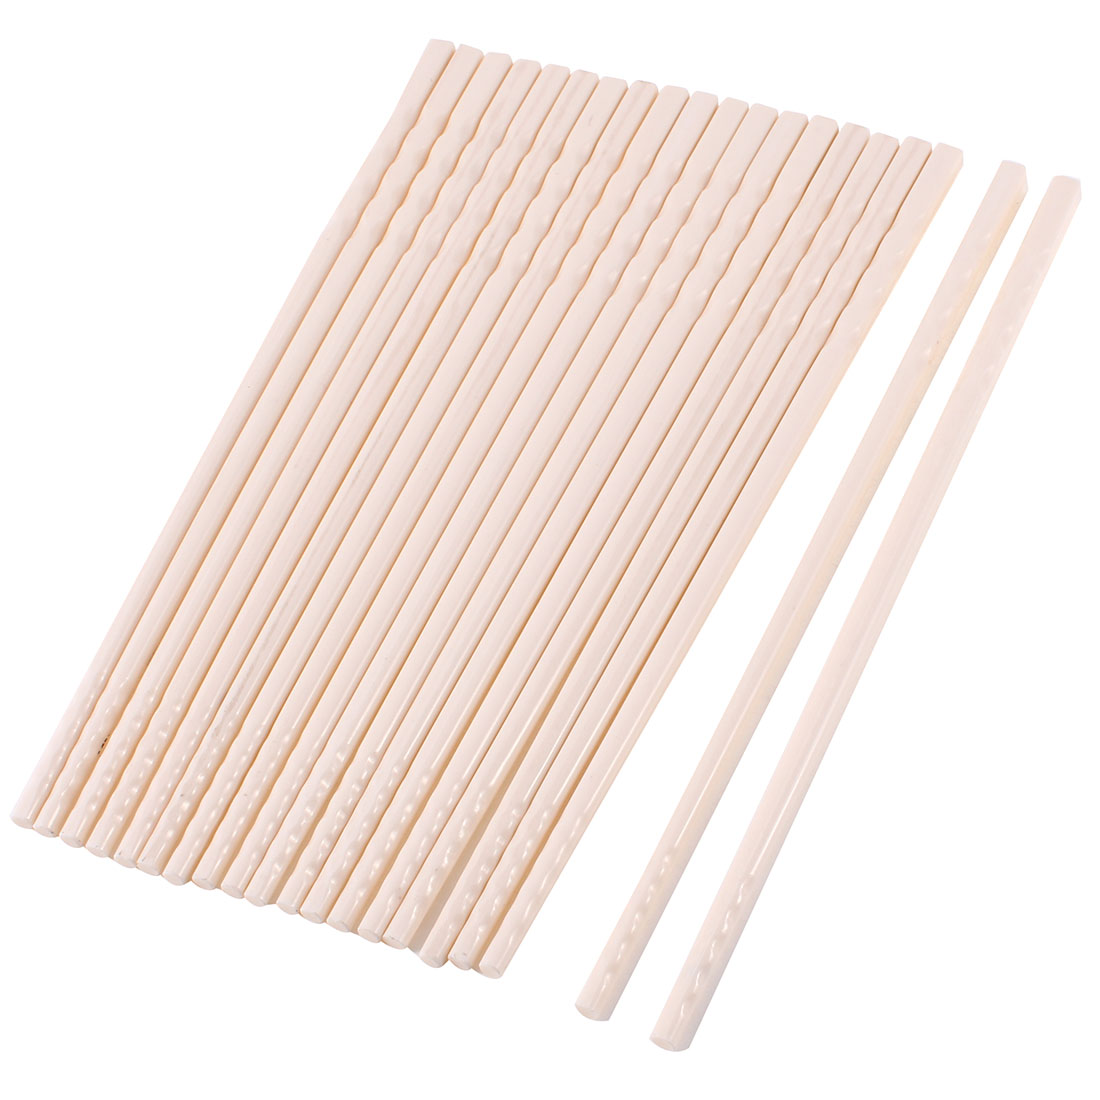 "10 Pairs White Plastic Anti-slip Chopsticks Dinnerware 8.9"" Length"